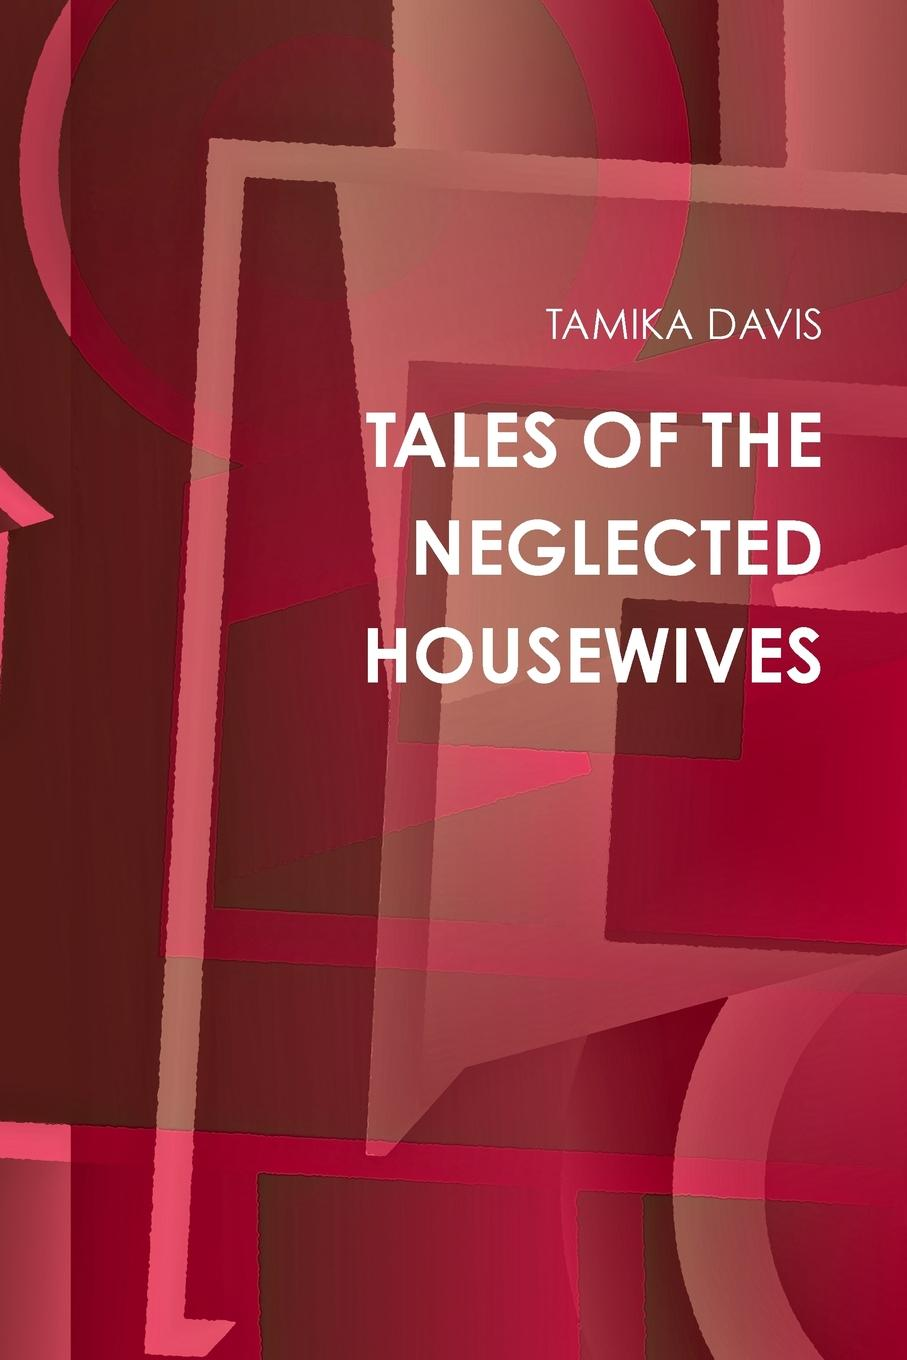 TAMIKA DAVIS TALES OF THE NEGLECTED HOUSEWIVES